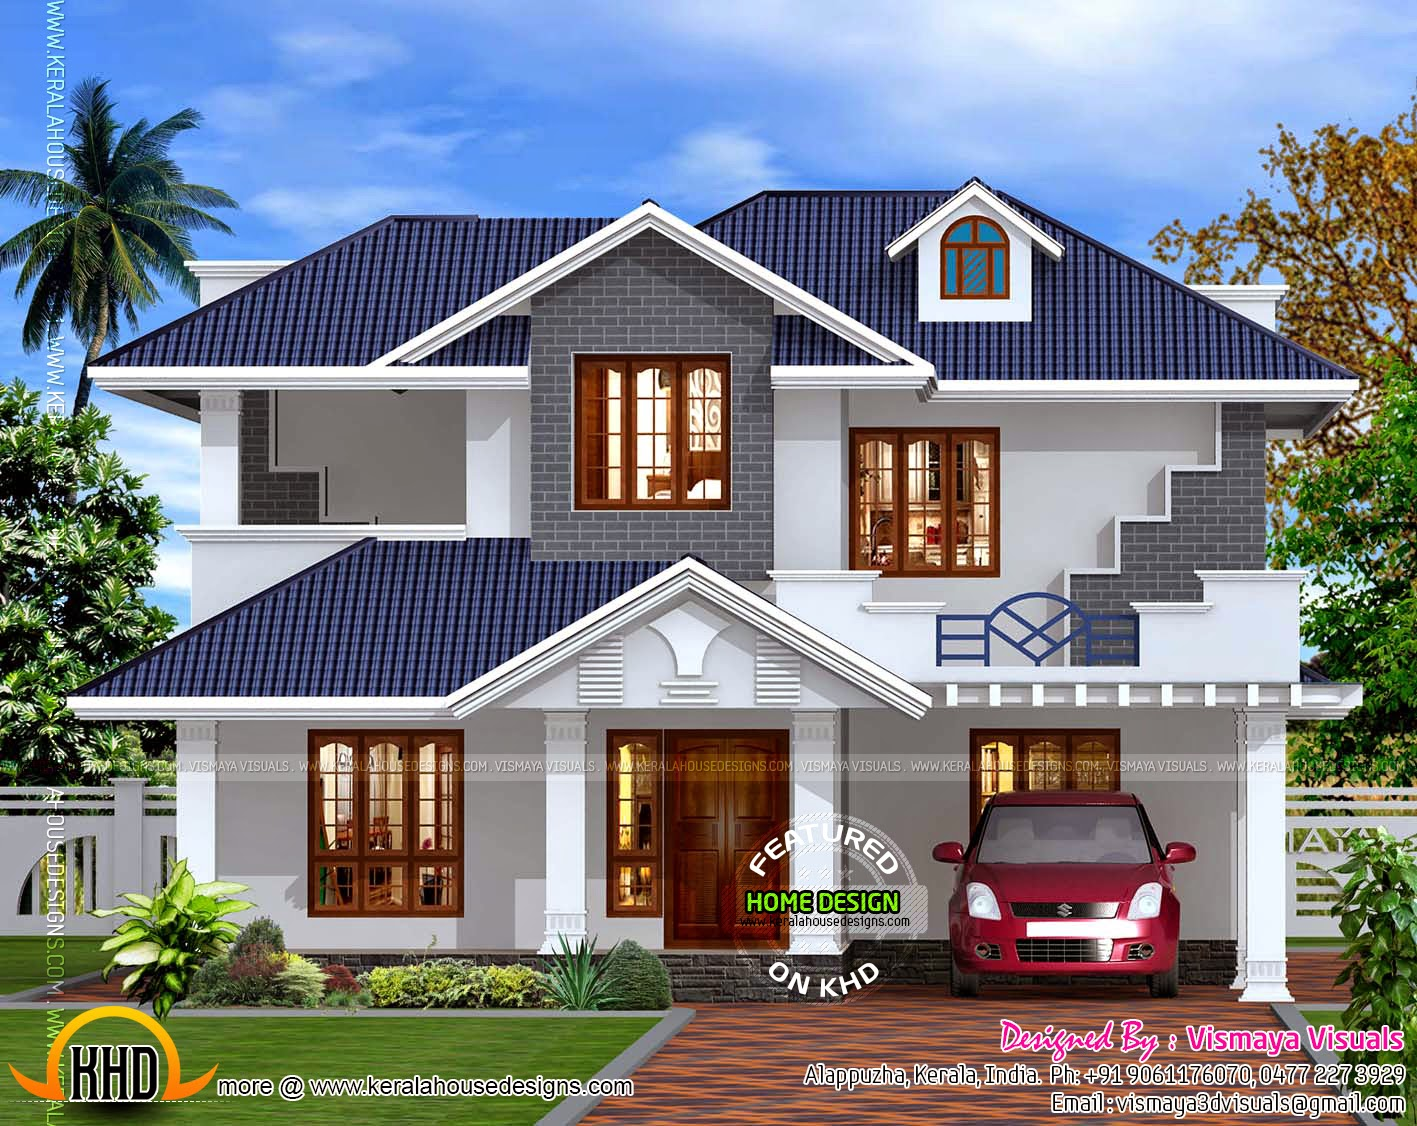 Kerala style villa exterior kerala home design and floor for Kerala model house photos with details